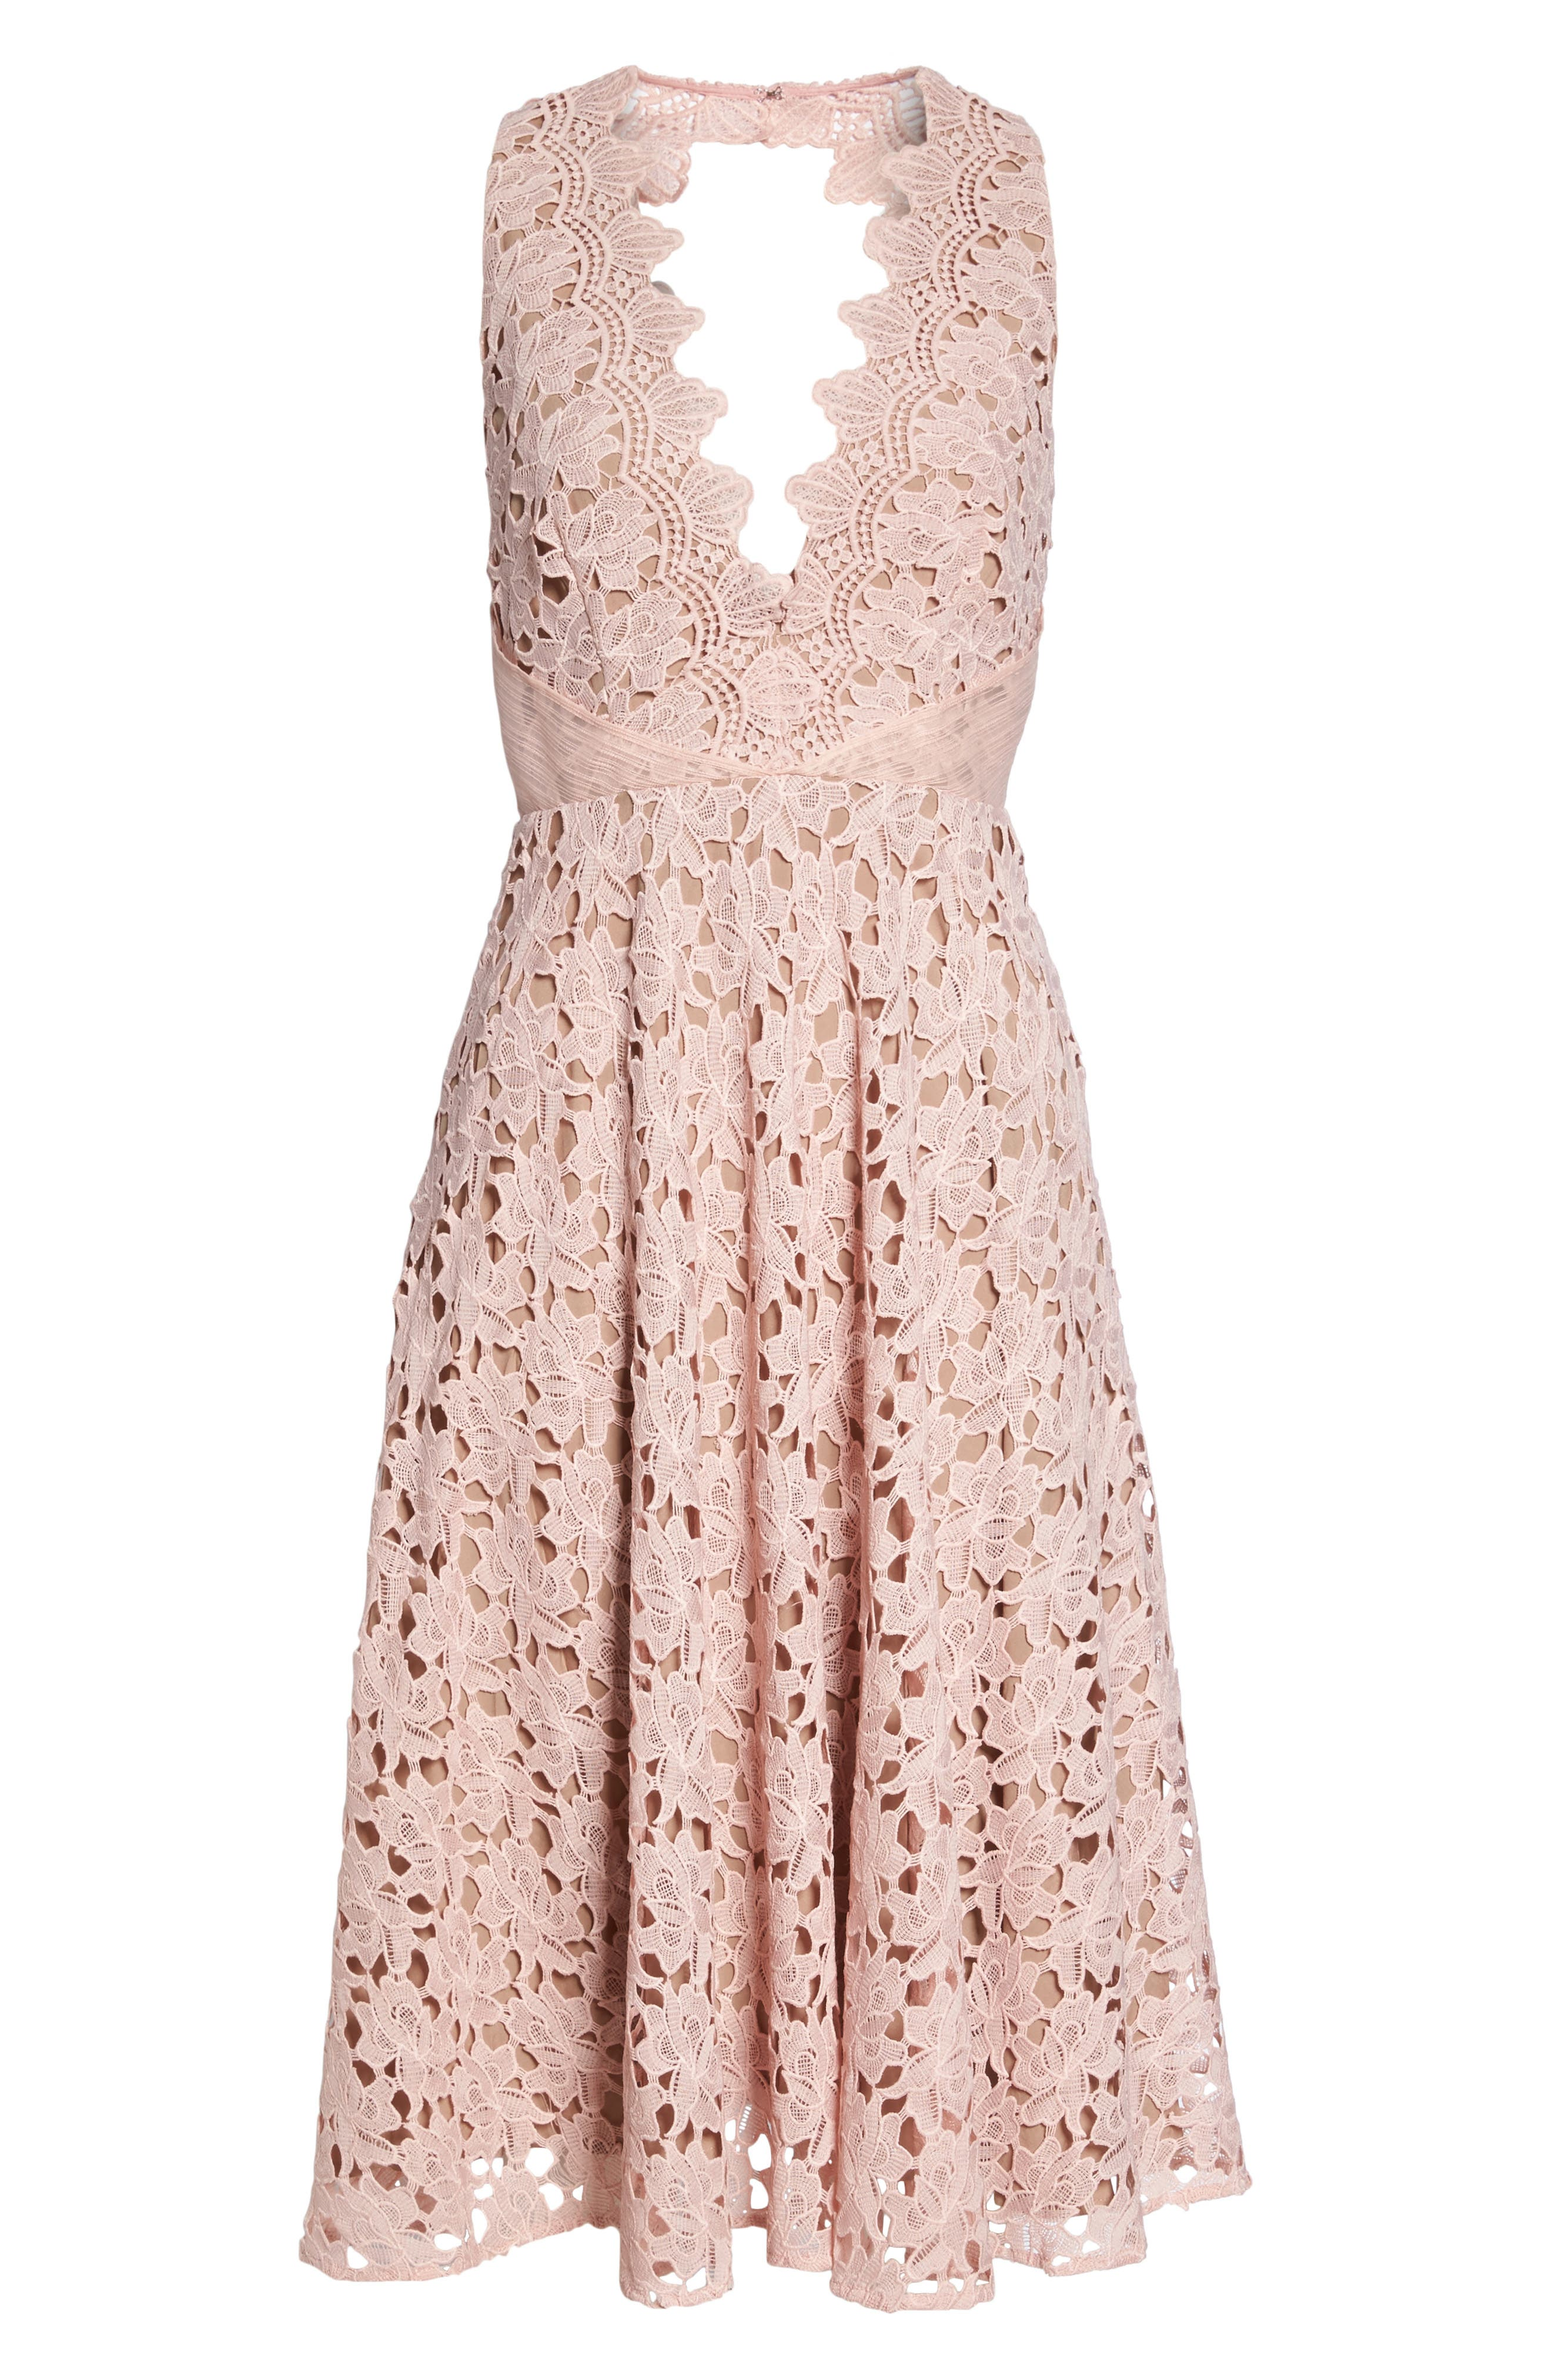 Ashley Guipure Lace Fit & Flare Dress,                             Alternate thumbnail 6, color,                             Pink